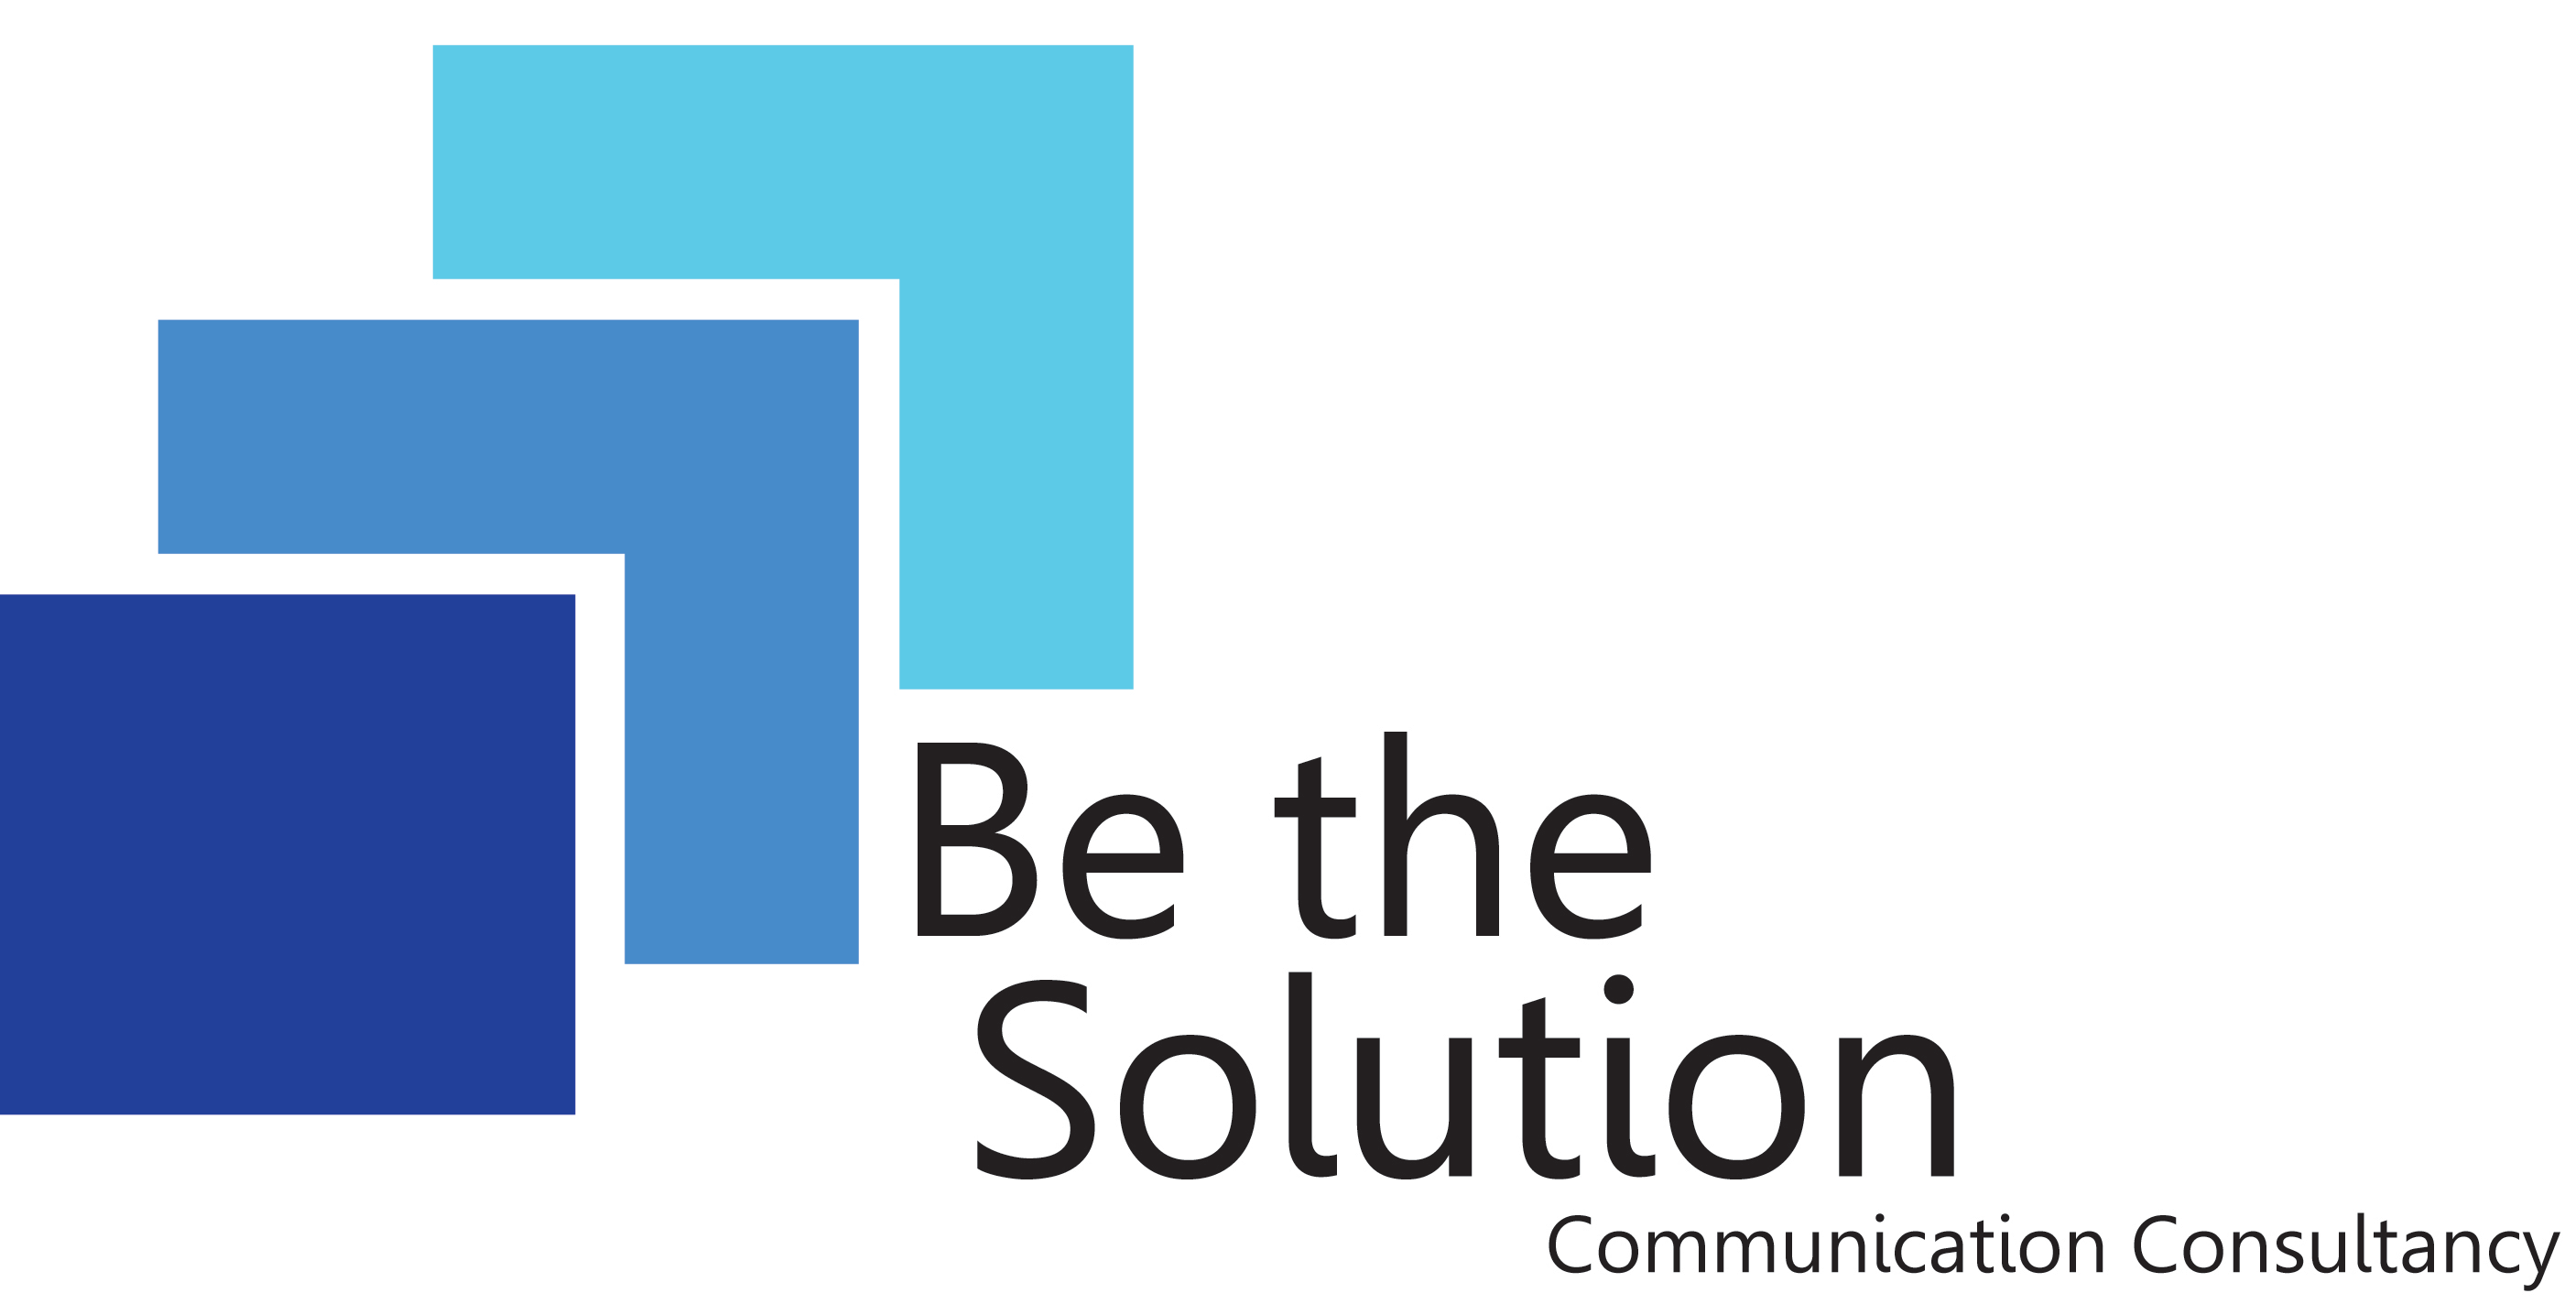 Be the Solution Communication